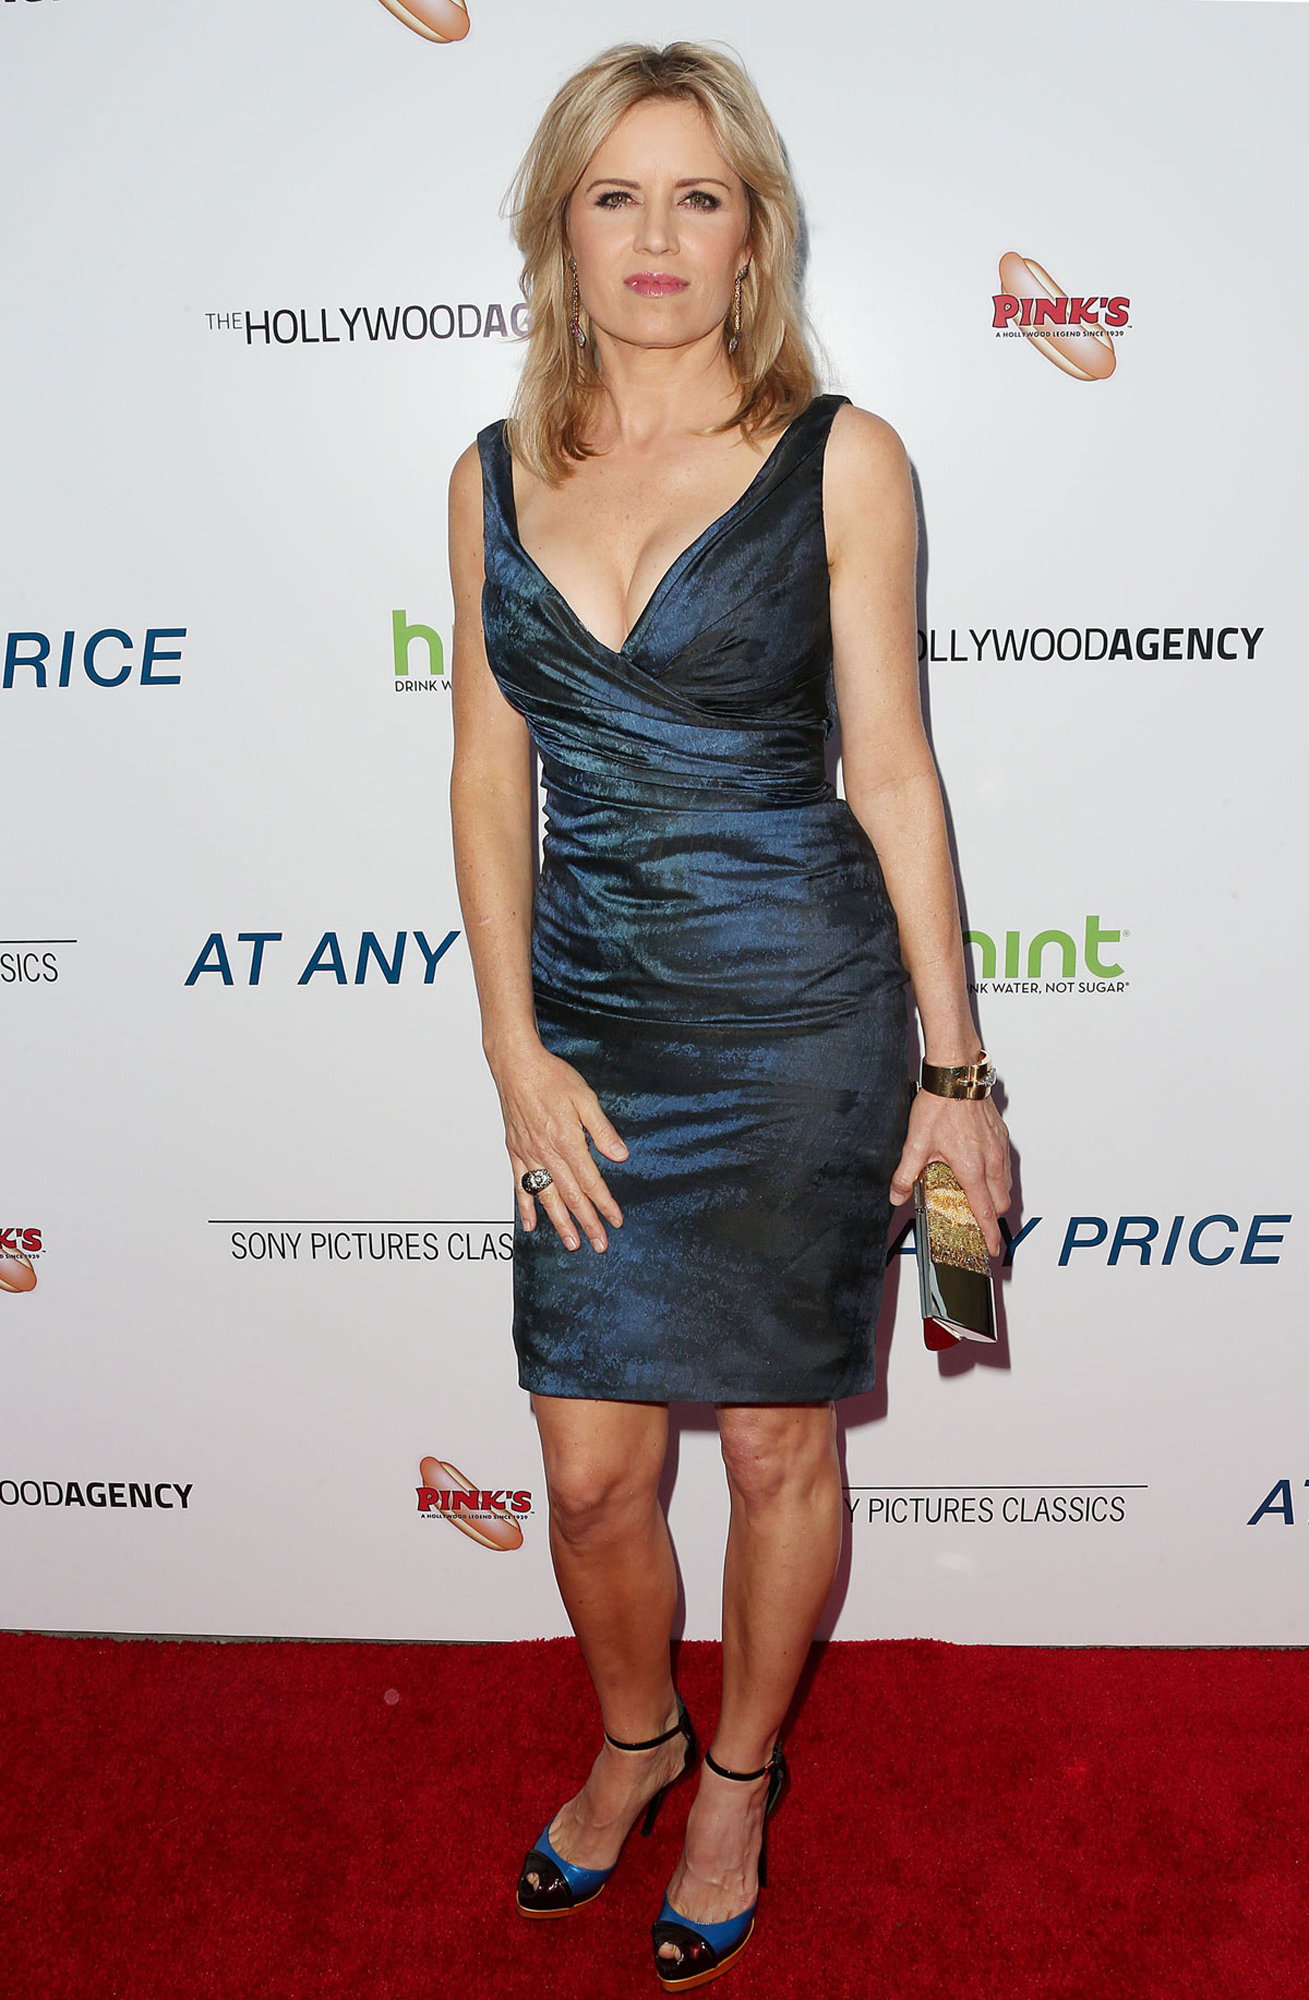 Kim Dickens Hot in Black Dress